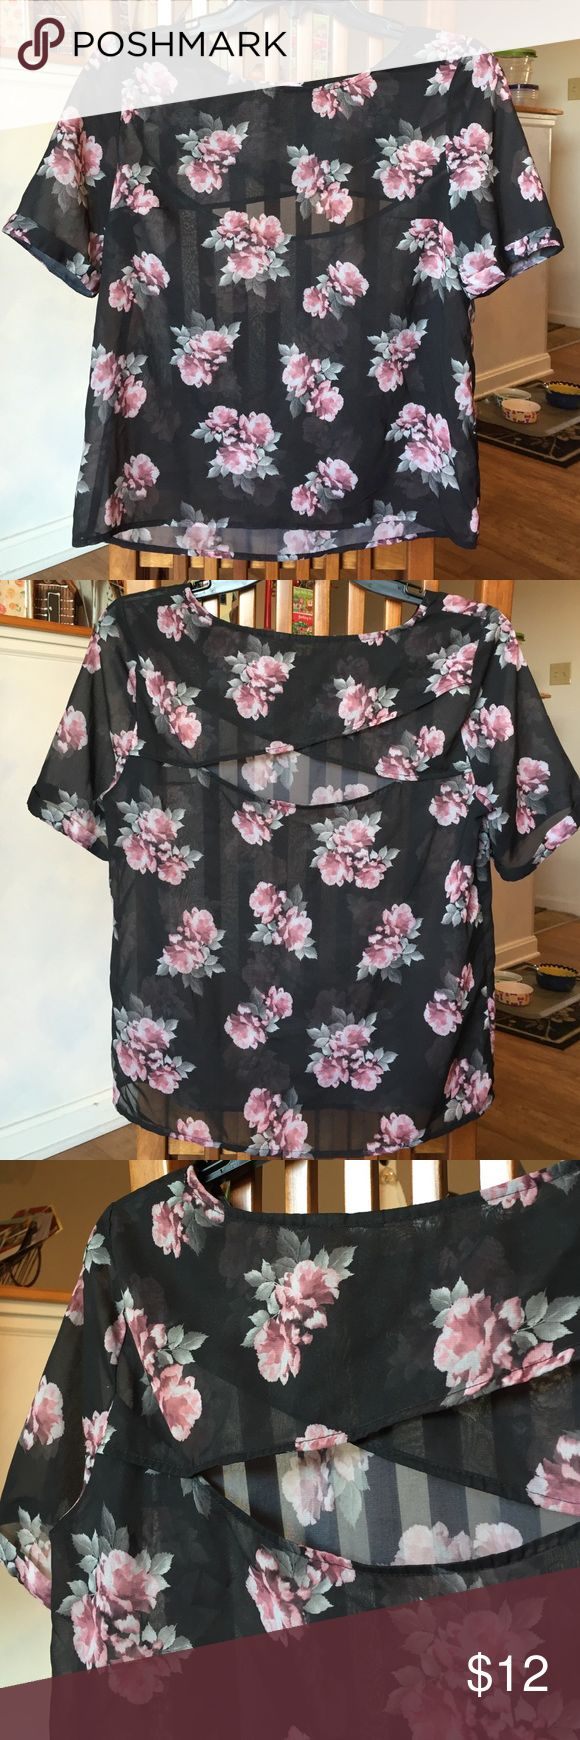 Sheer Floral Top 🌸 Great floral top with back cut out! Excellent condition! A bit sheer but great for clubs/parties or wearing with a nude cami 🌸 Tops Blouses